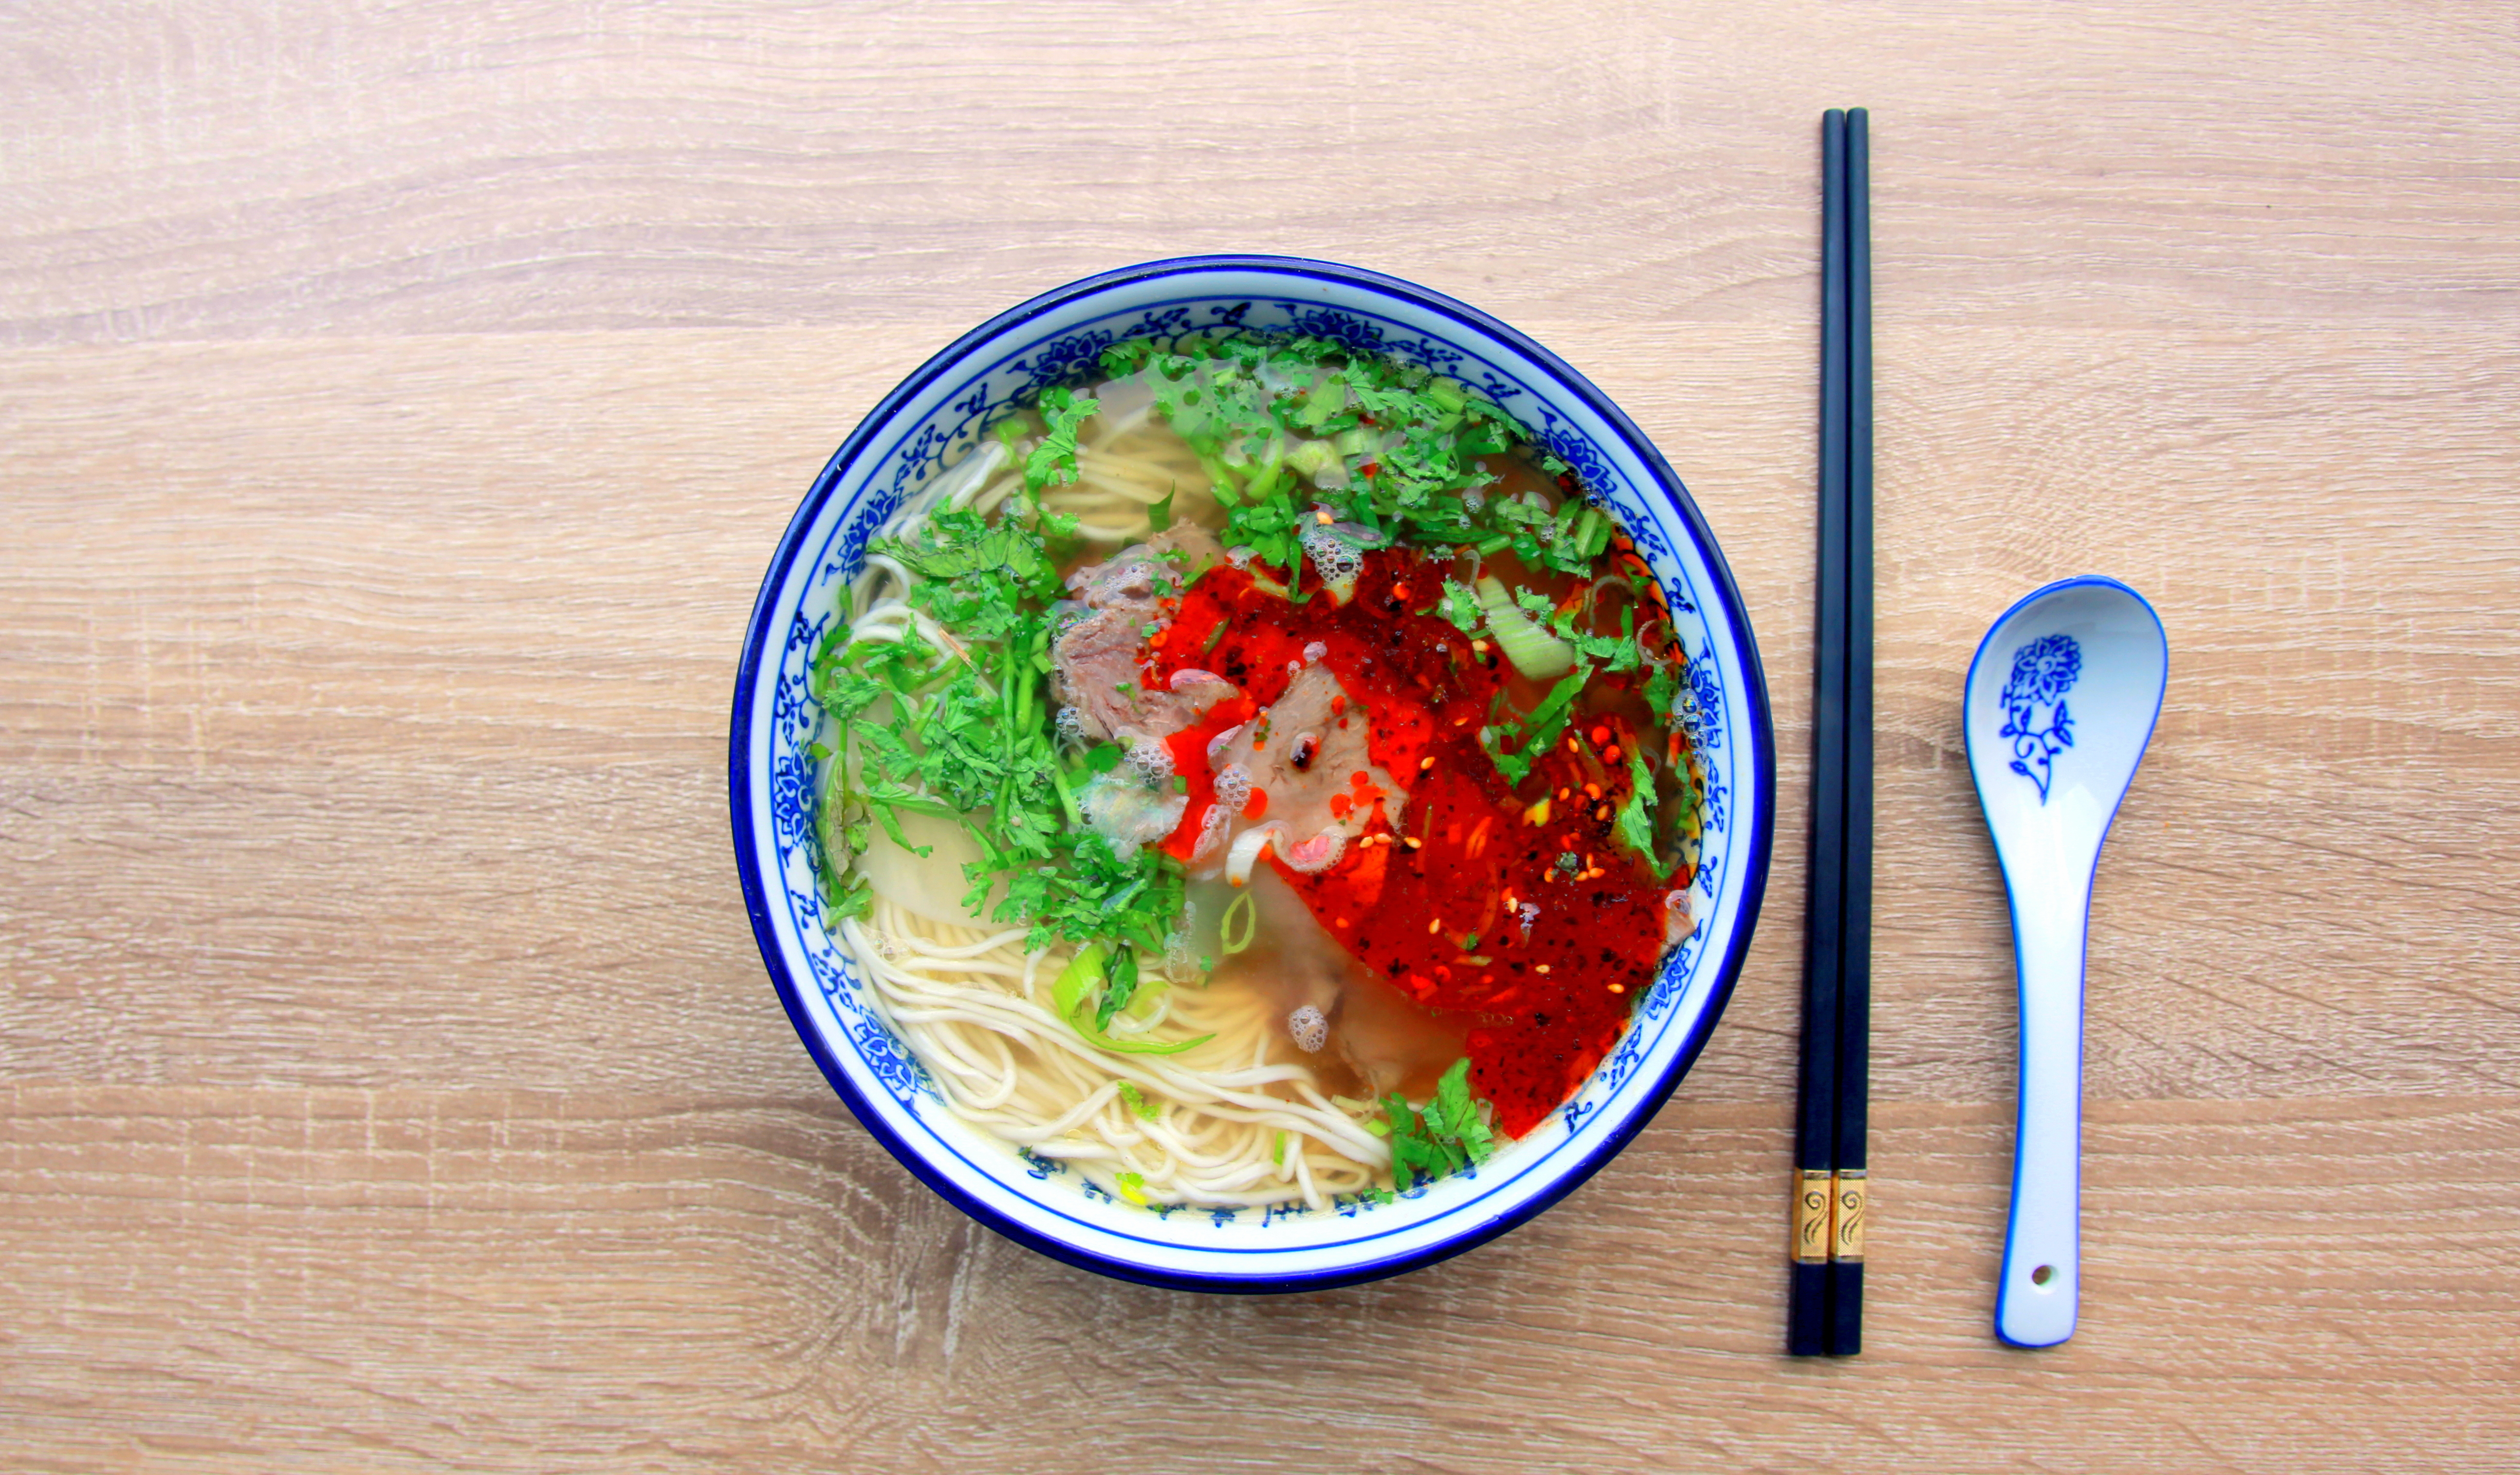 The Lanzhou Lamian List - 5 Places to Enjoy HALAL Hand